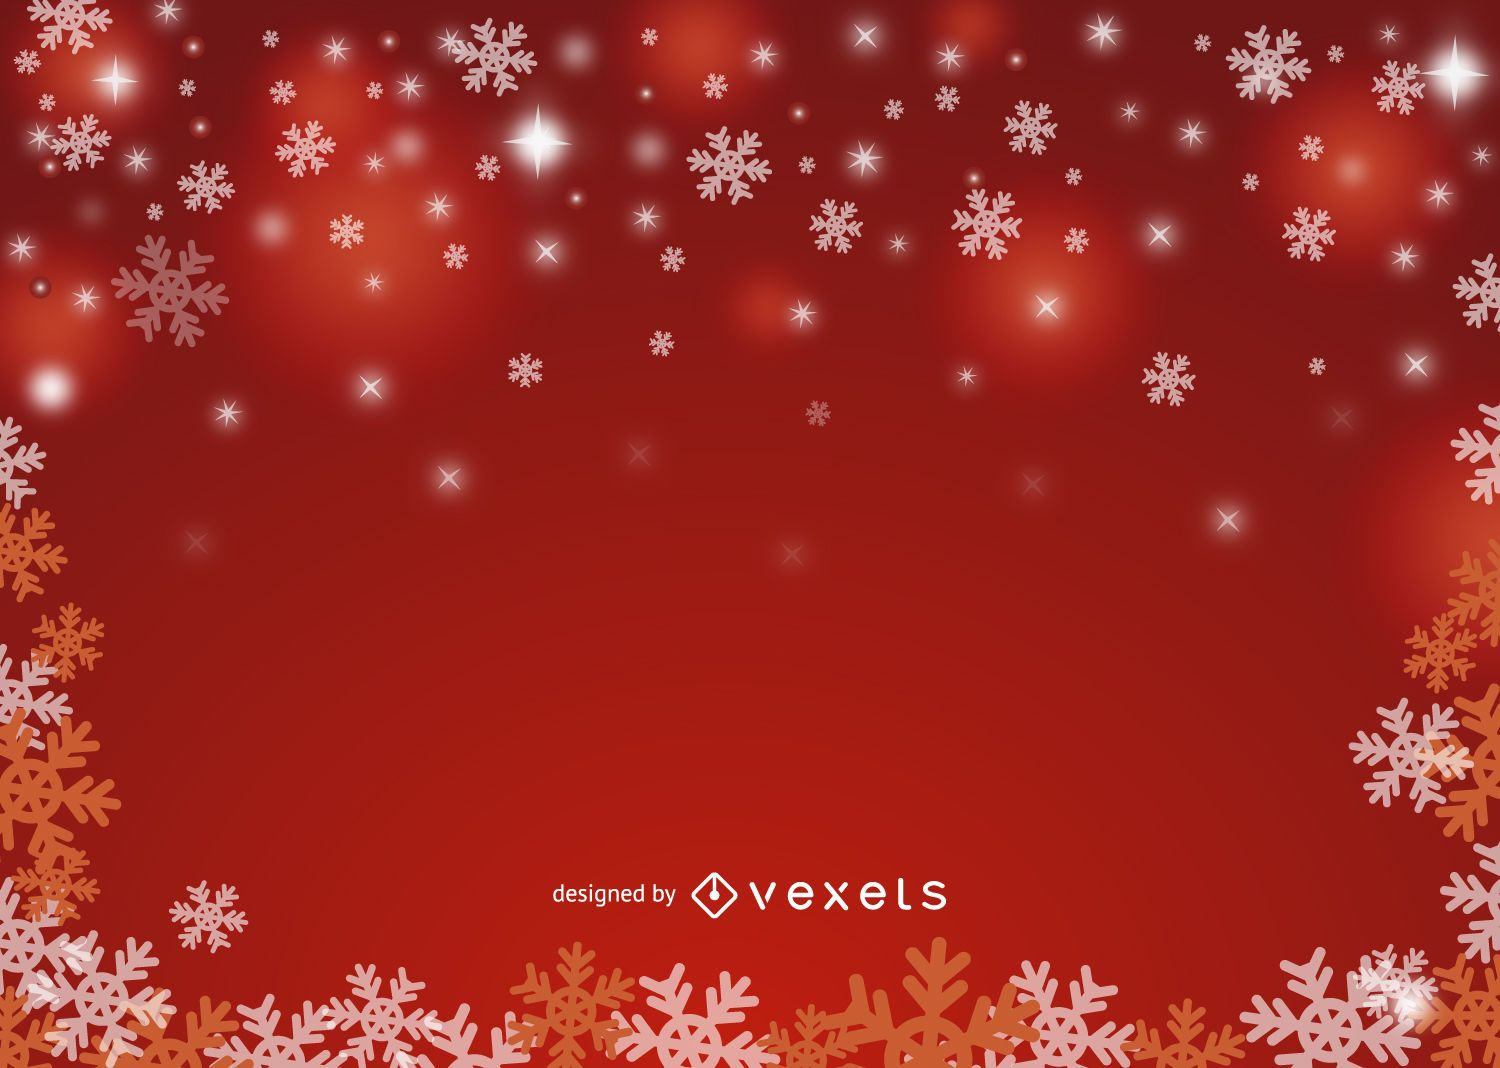 Red Christmas snowflake background - Vector download